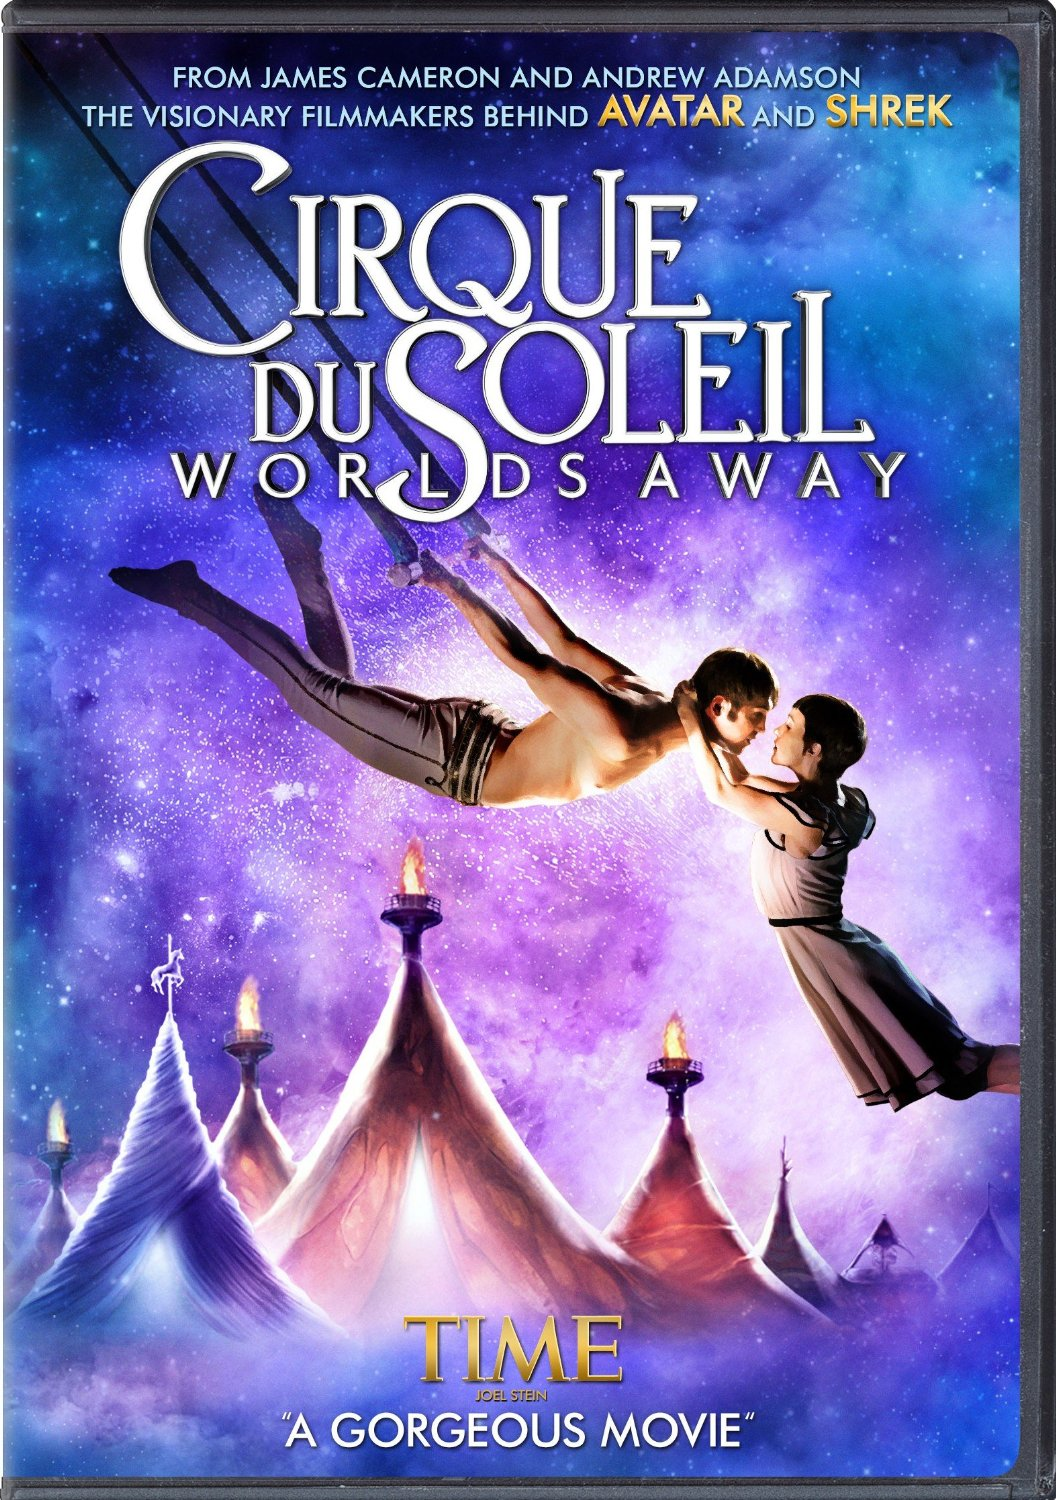 Cirque Du Soleil World S Away Mia: LIFE OF PI & More New Releases For March 12